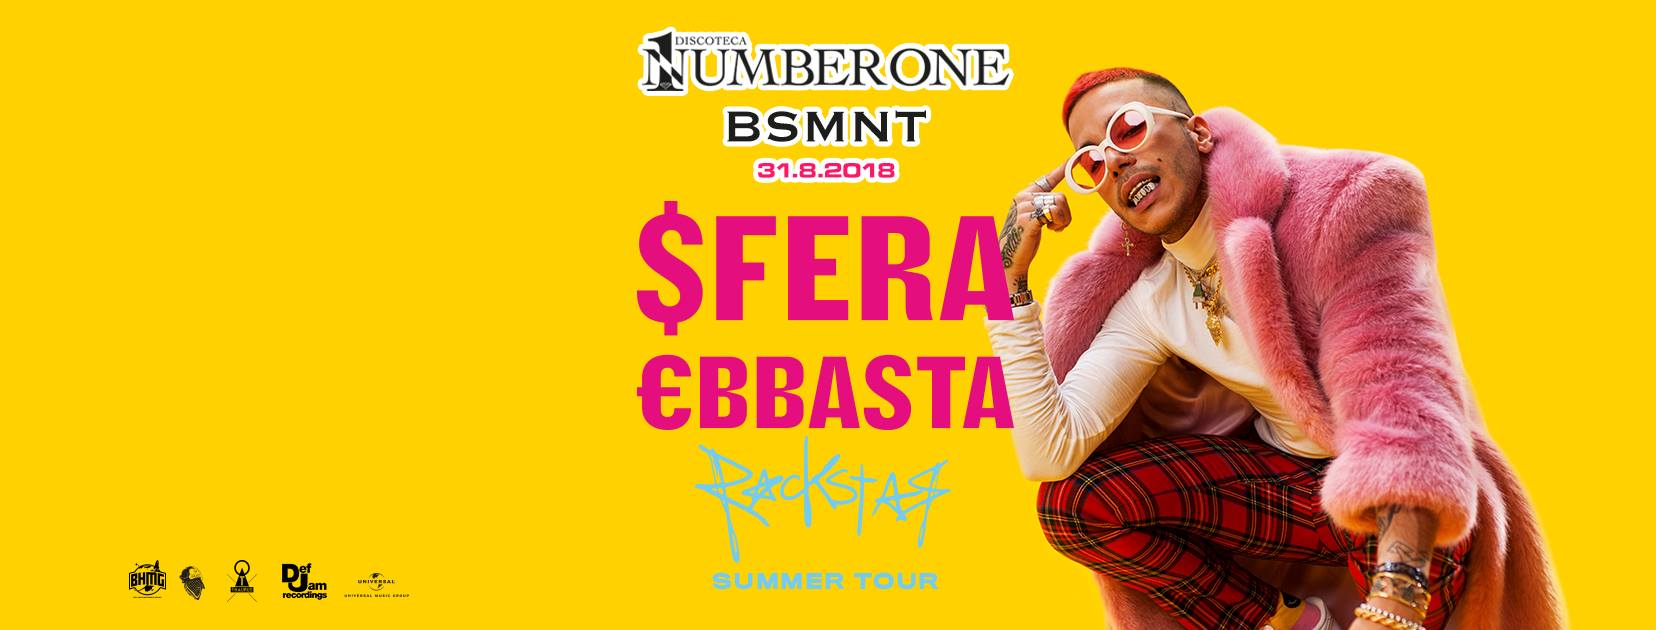 Number One & Basement – Sfera Ebbasta – Florida Ghedi BS 31.8.18